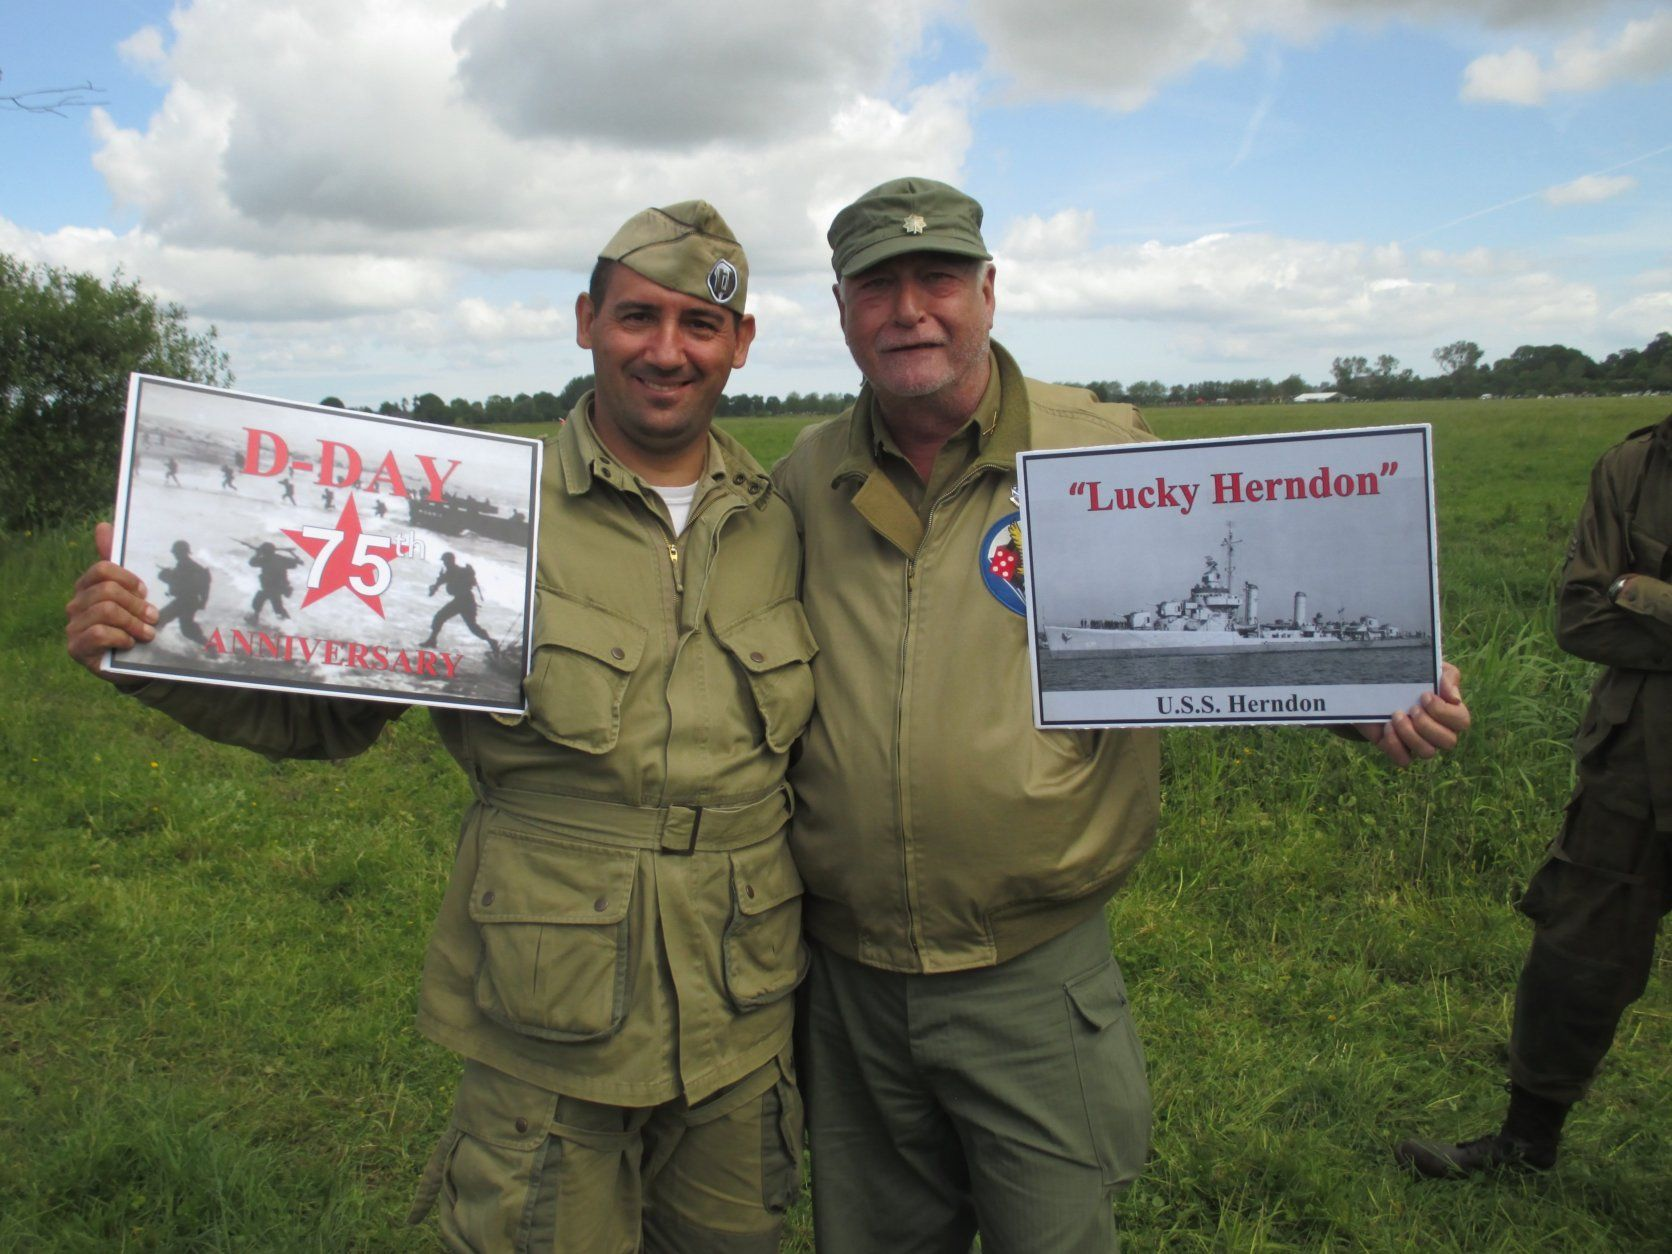 Re-enactors represent the 101st Airborne to honor those who fought in the Battle of Normandy. (Courtesy Sue Johnson)